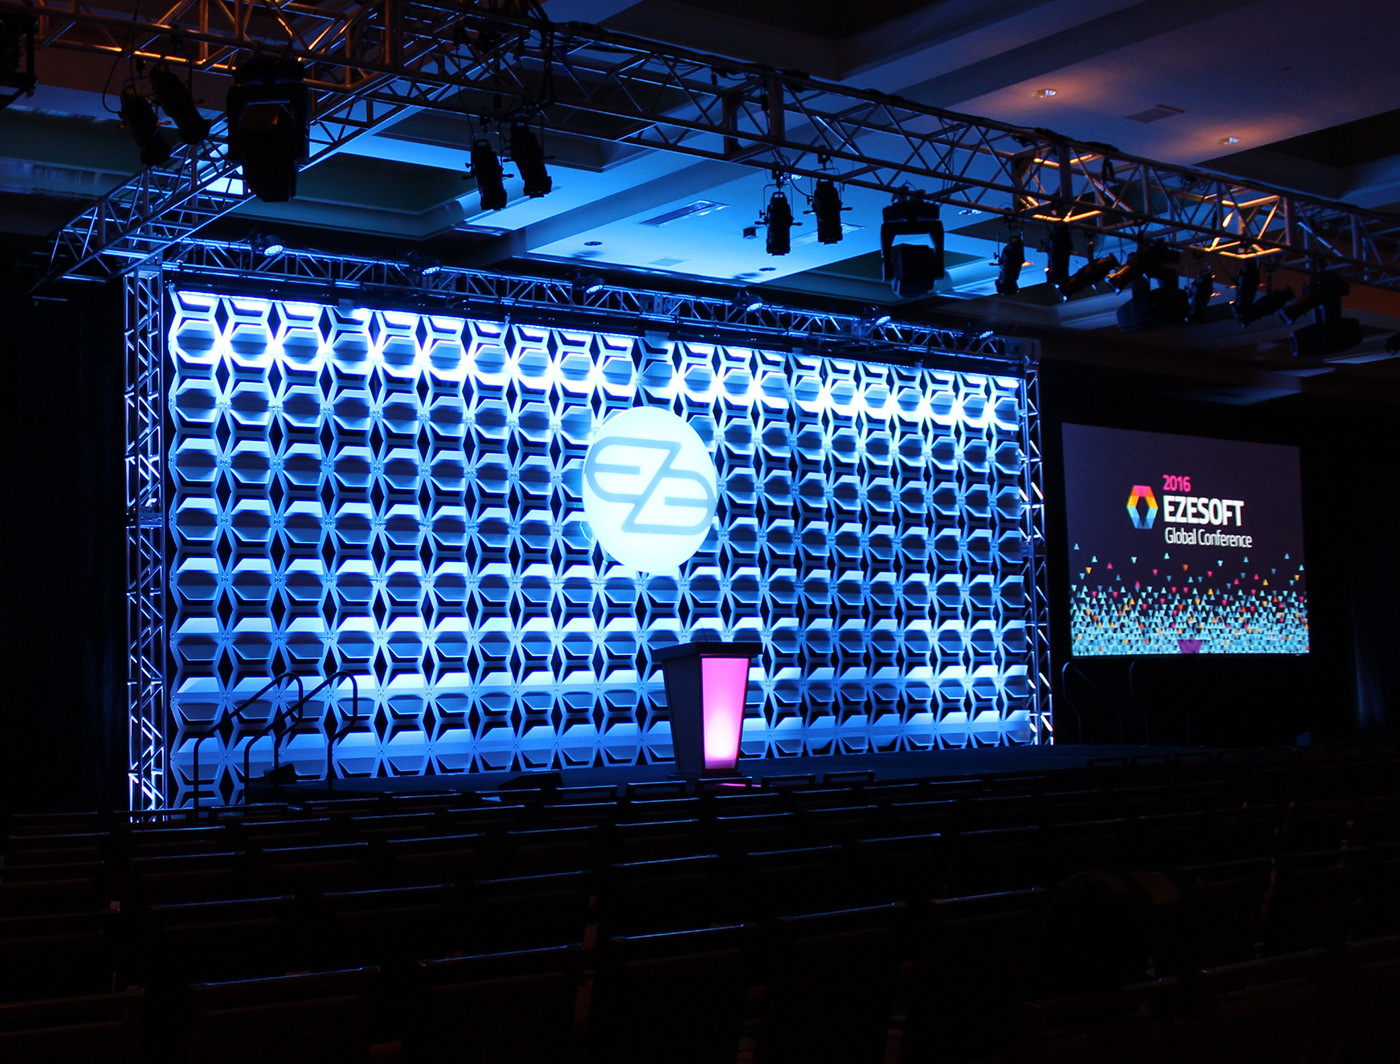 Hive SuperLever creates a stunning look for this corporate event